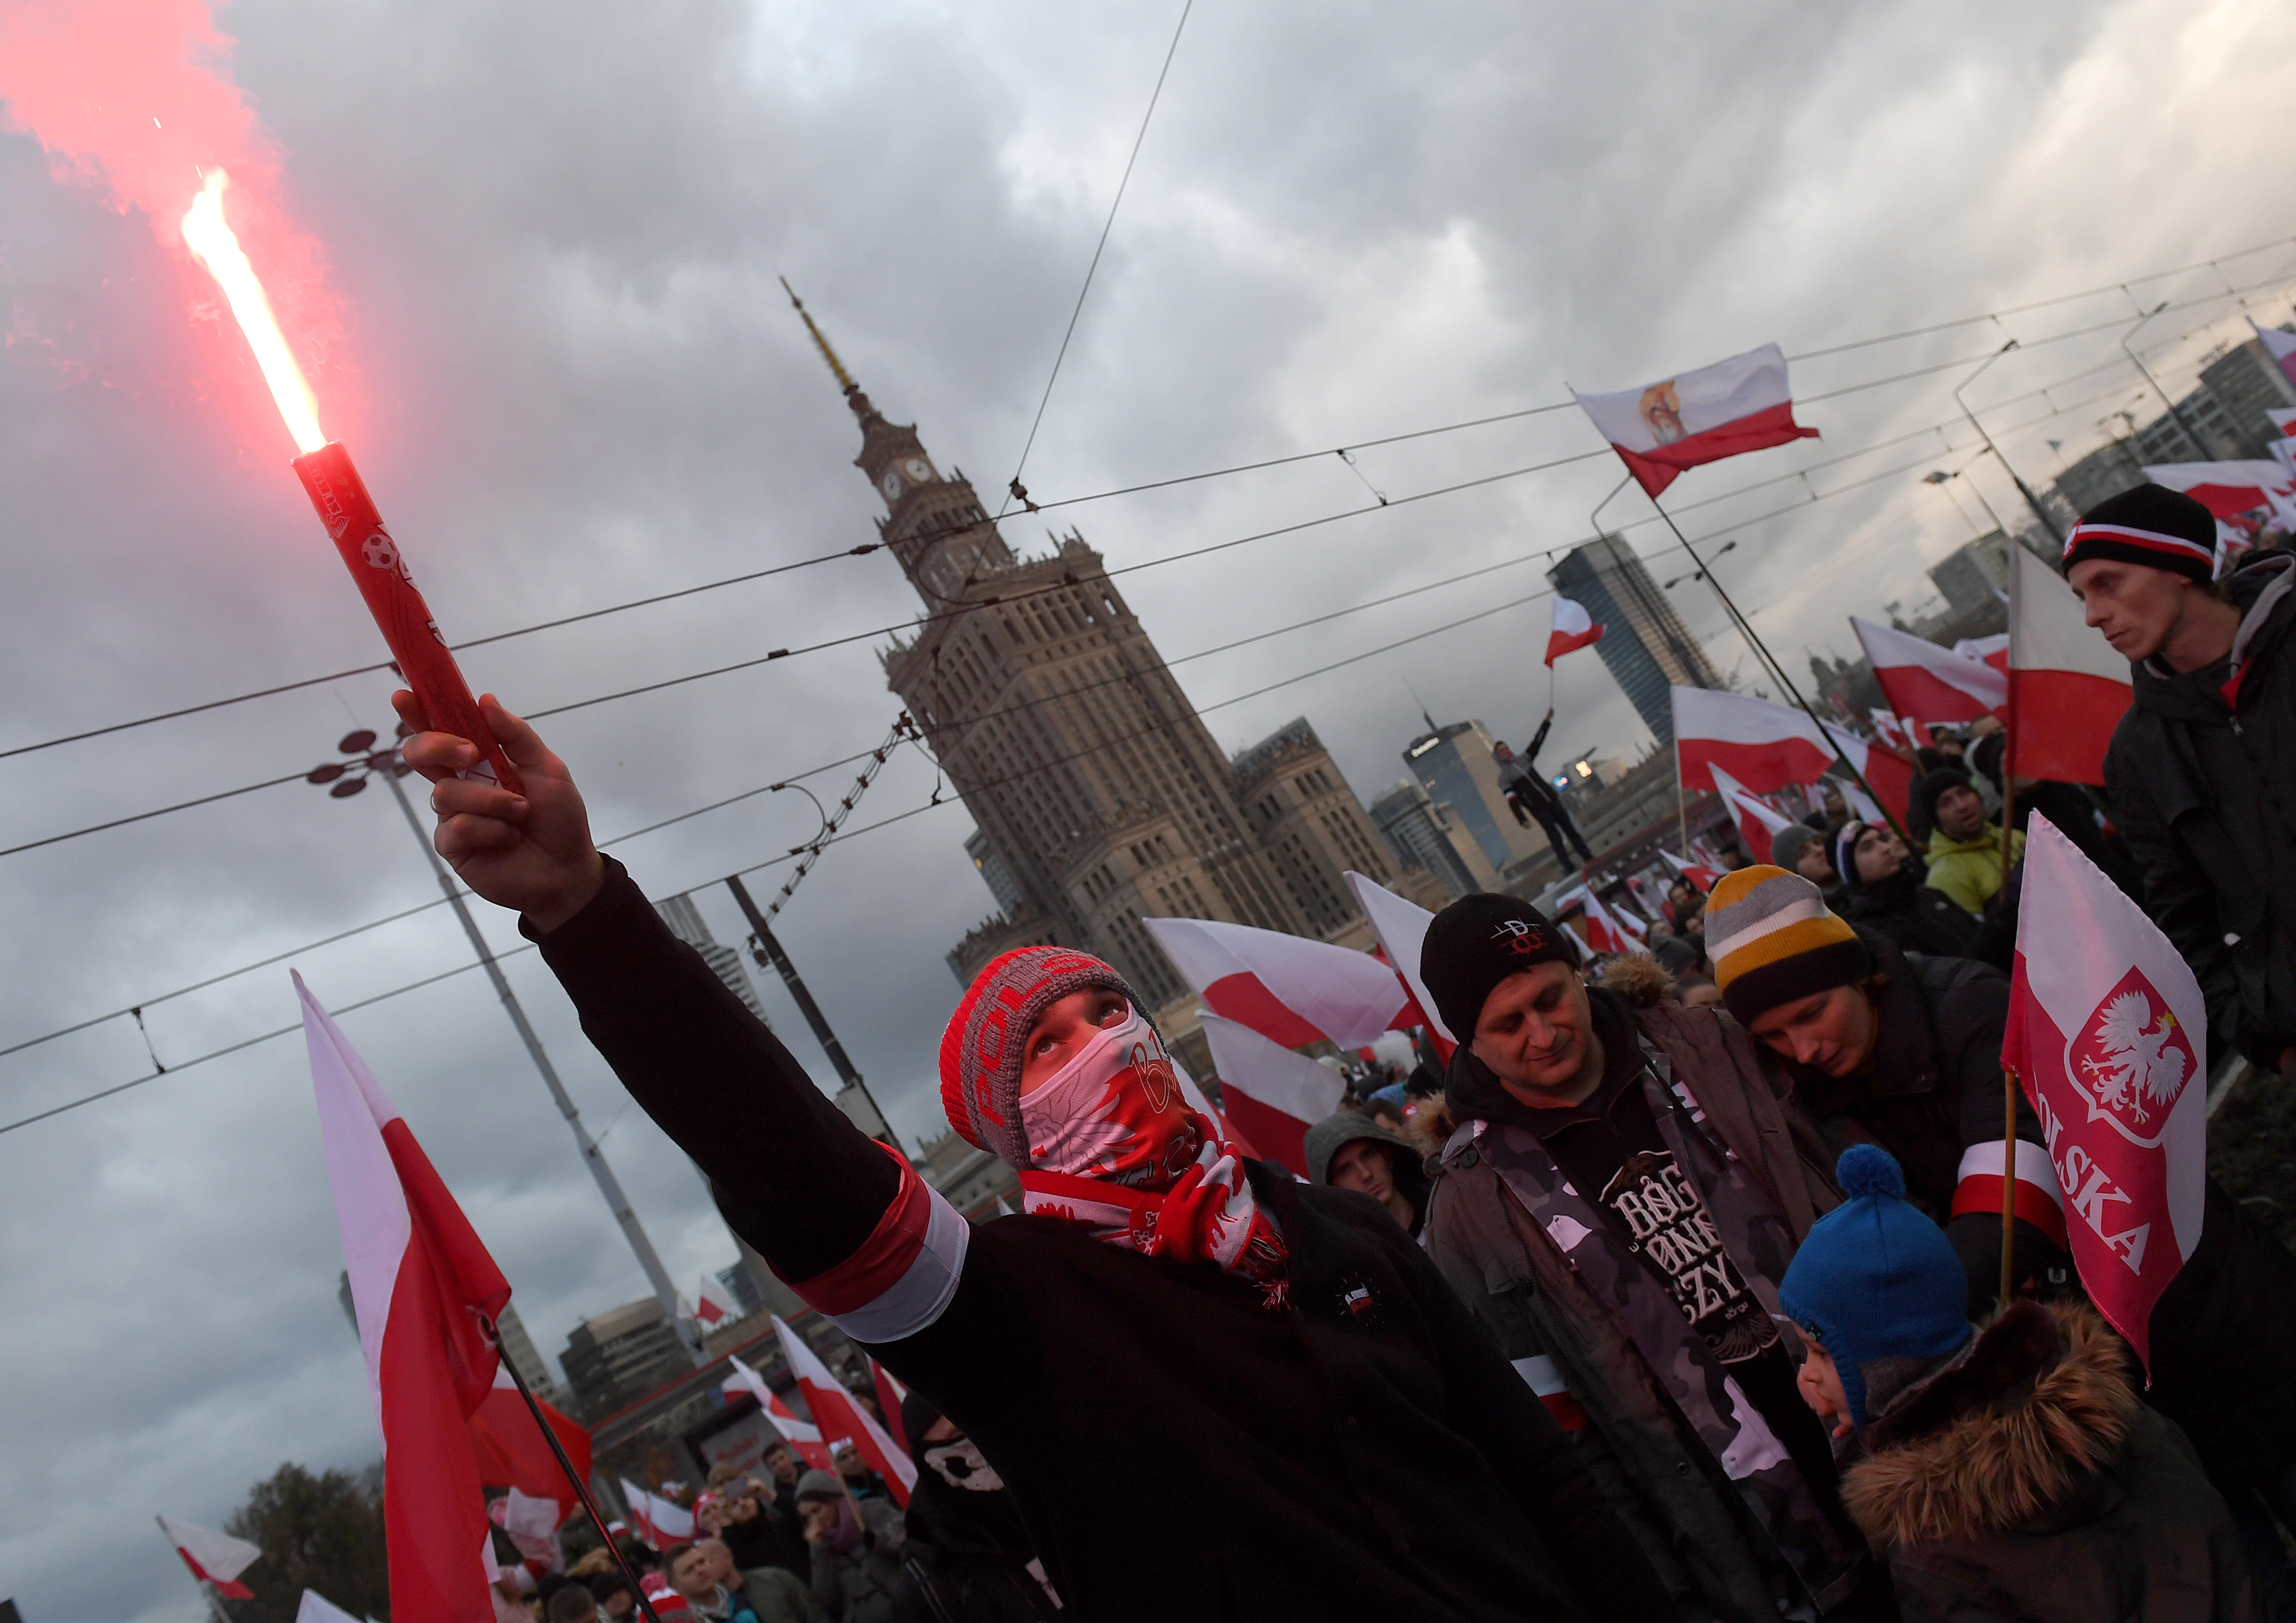 Demonstrators burn flares and wave Polish flags during Poland's Independence Day in Warsaw (AFP PHOTO/JANEK SKARZYNSKI)